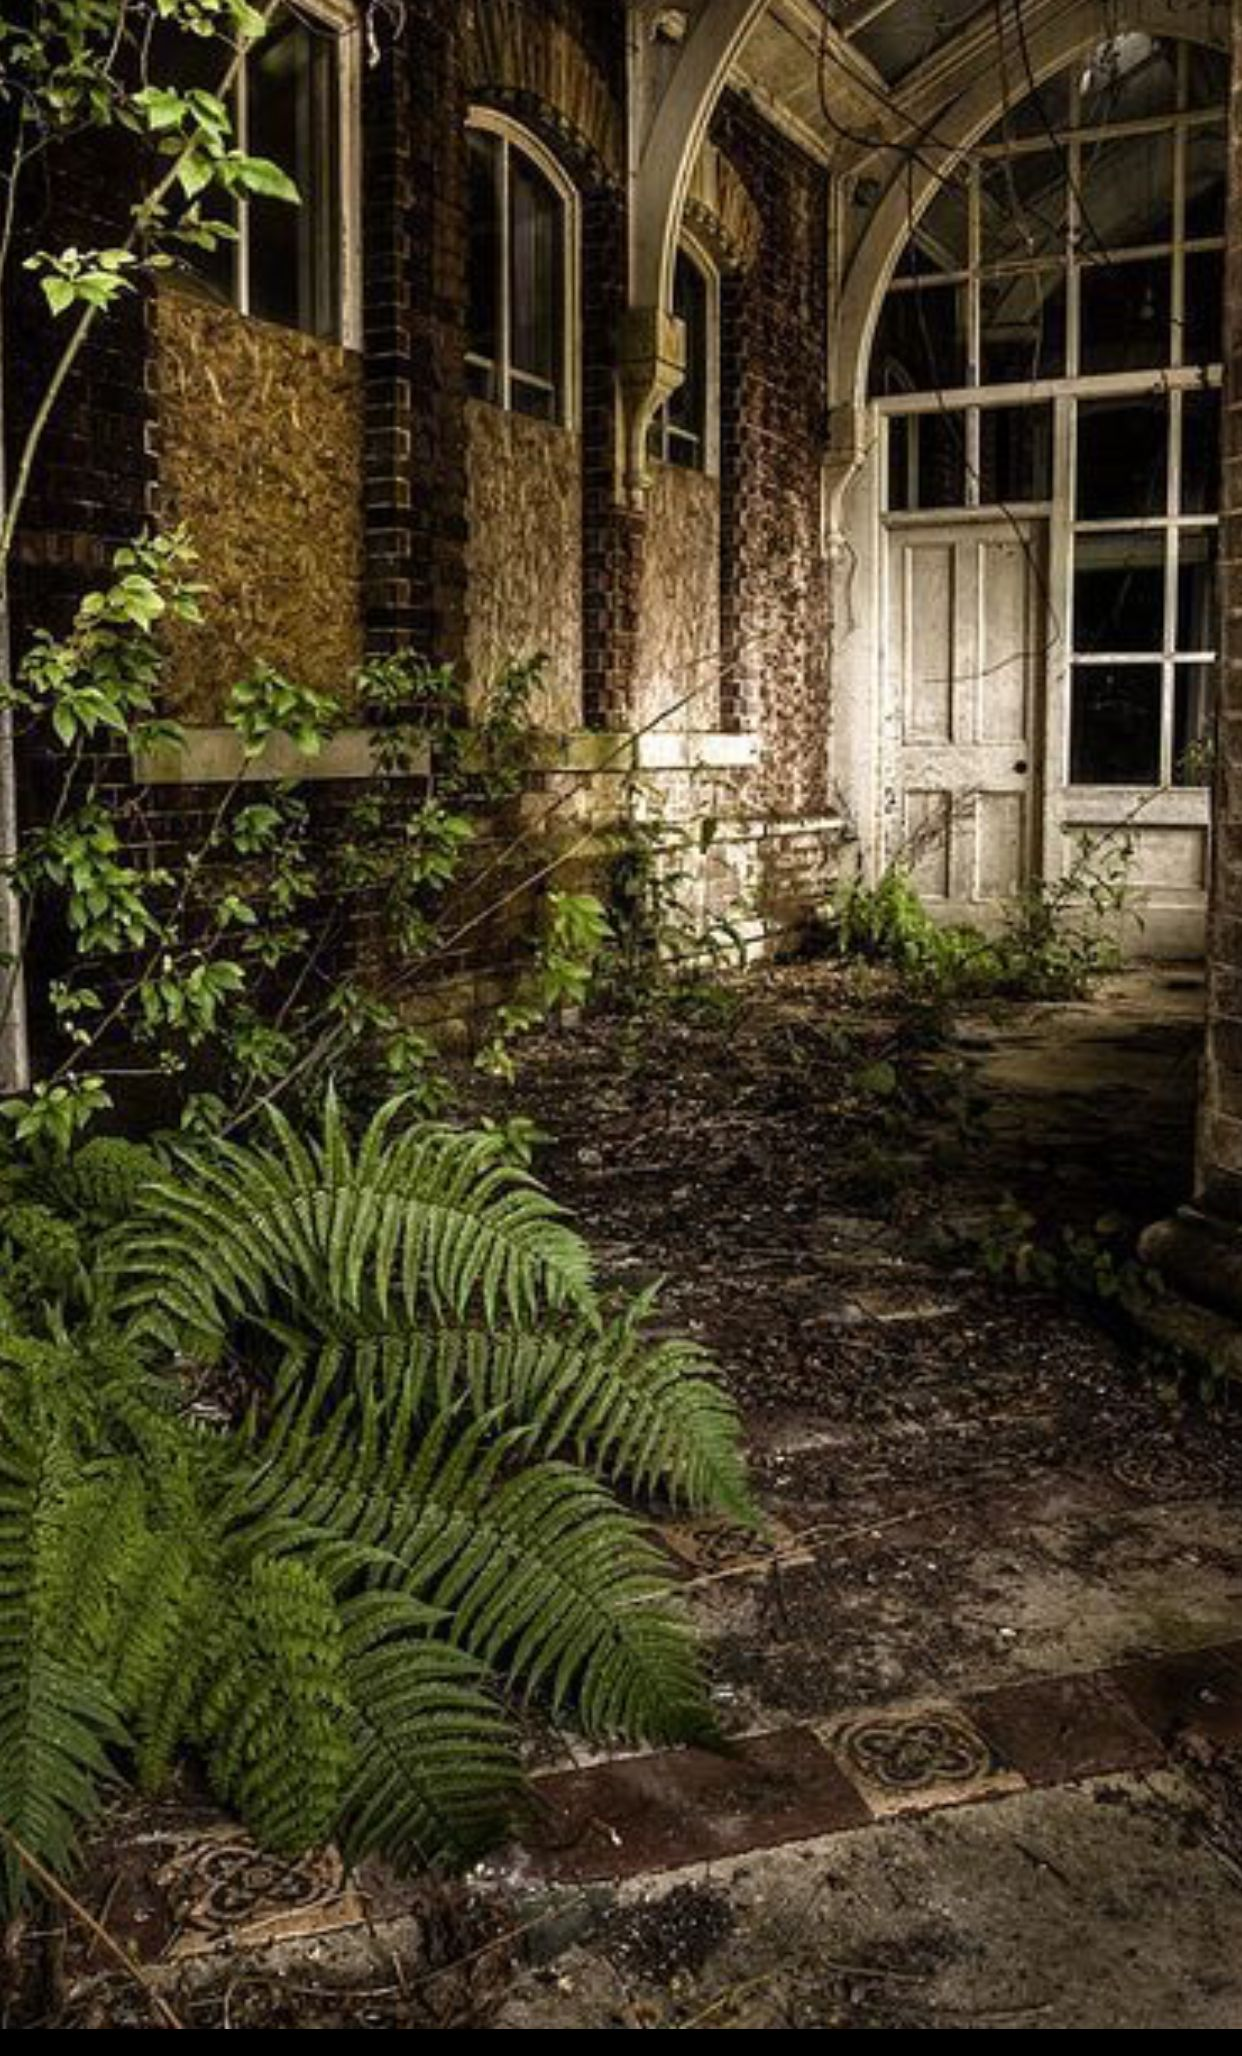 Idea by Shash on Secret Garden Abandoned places